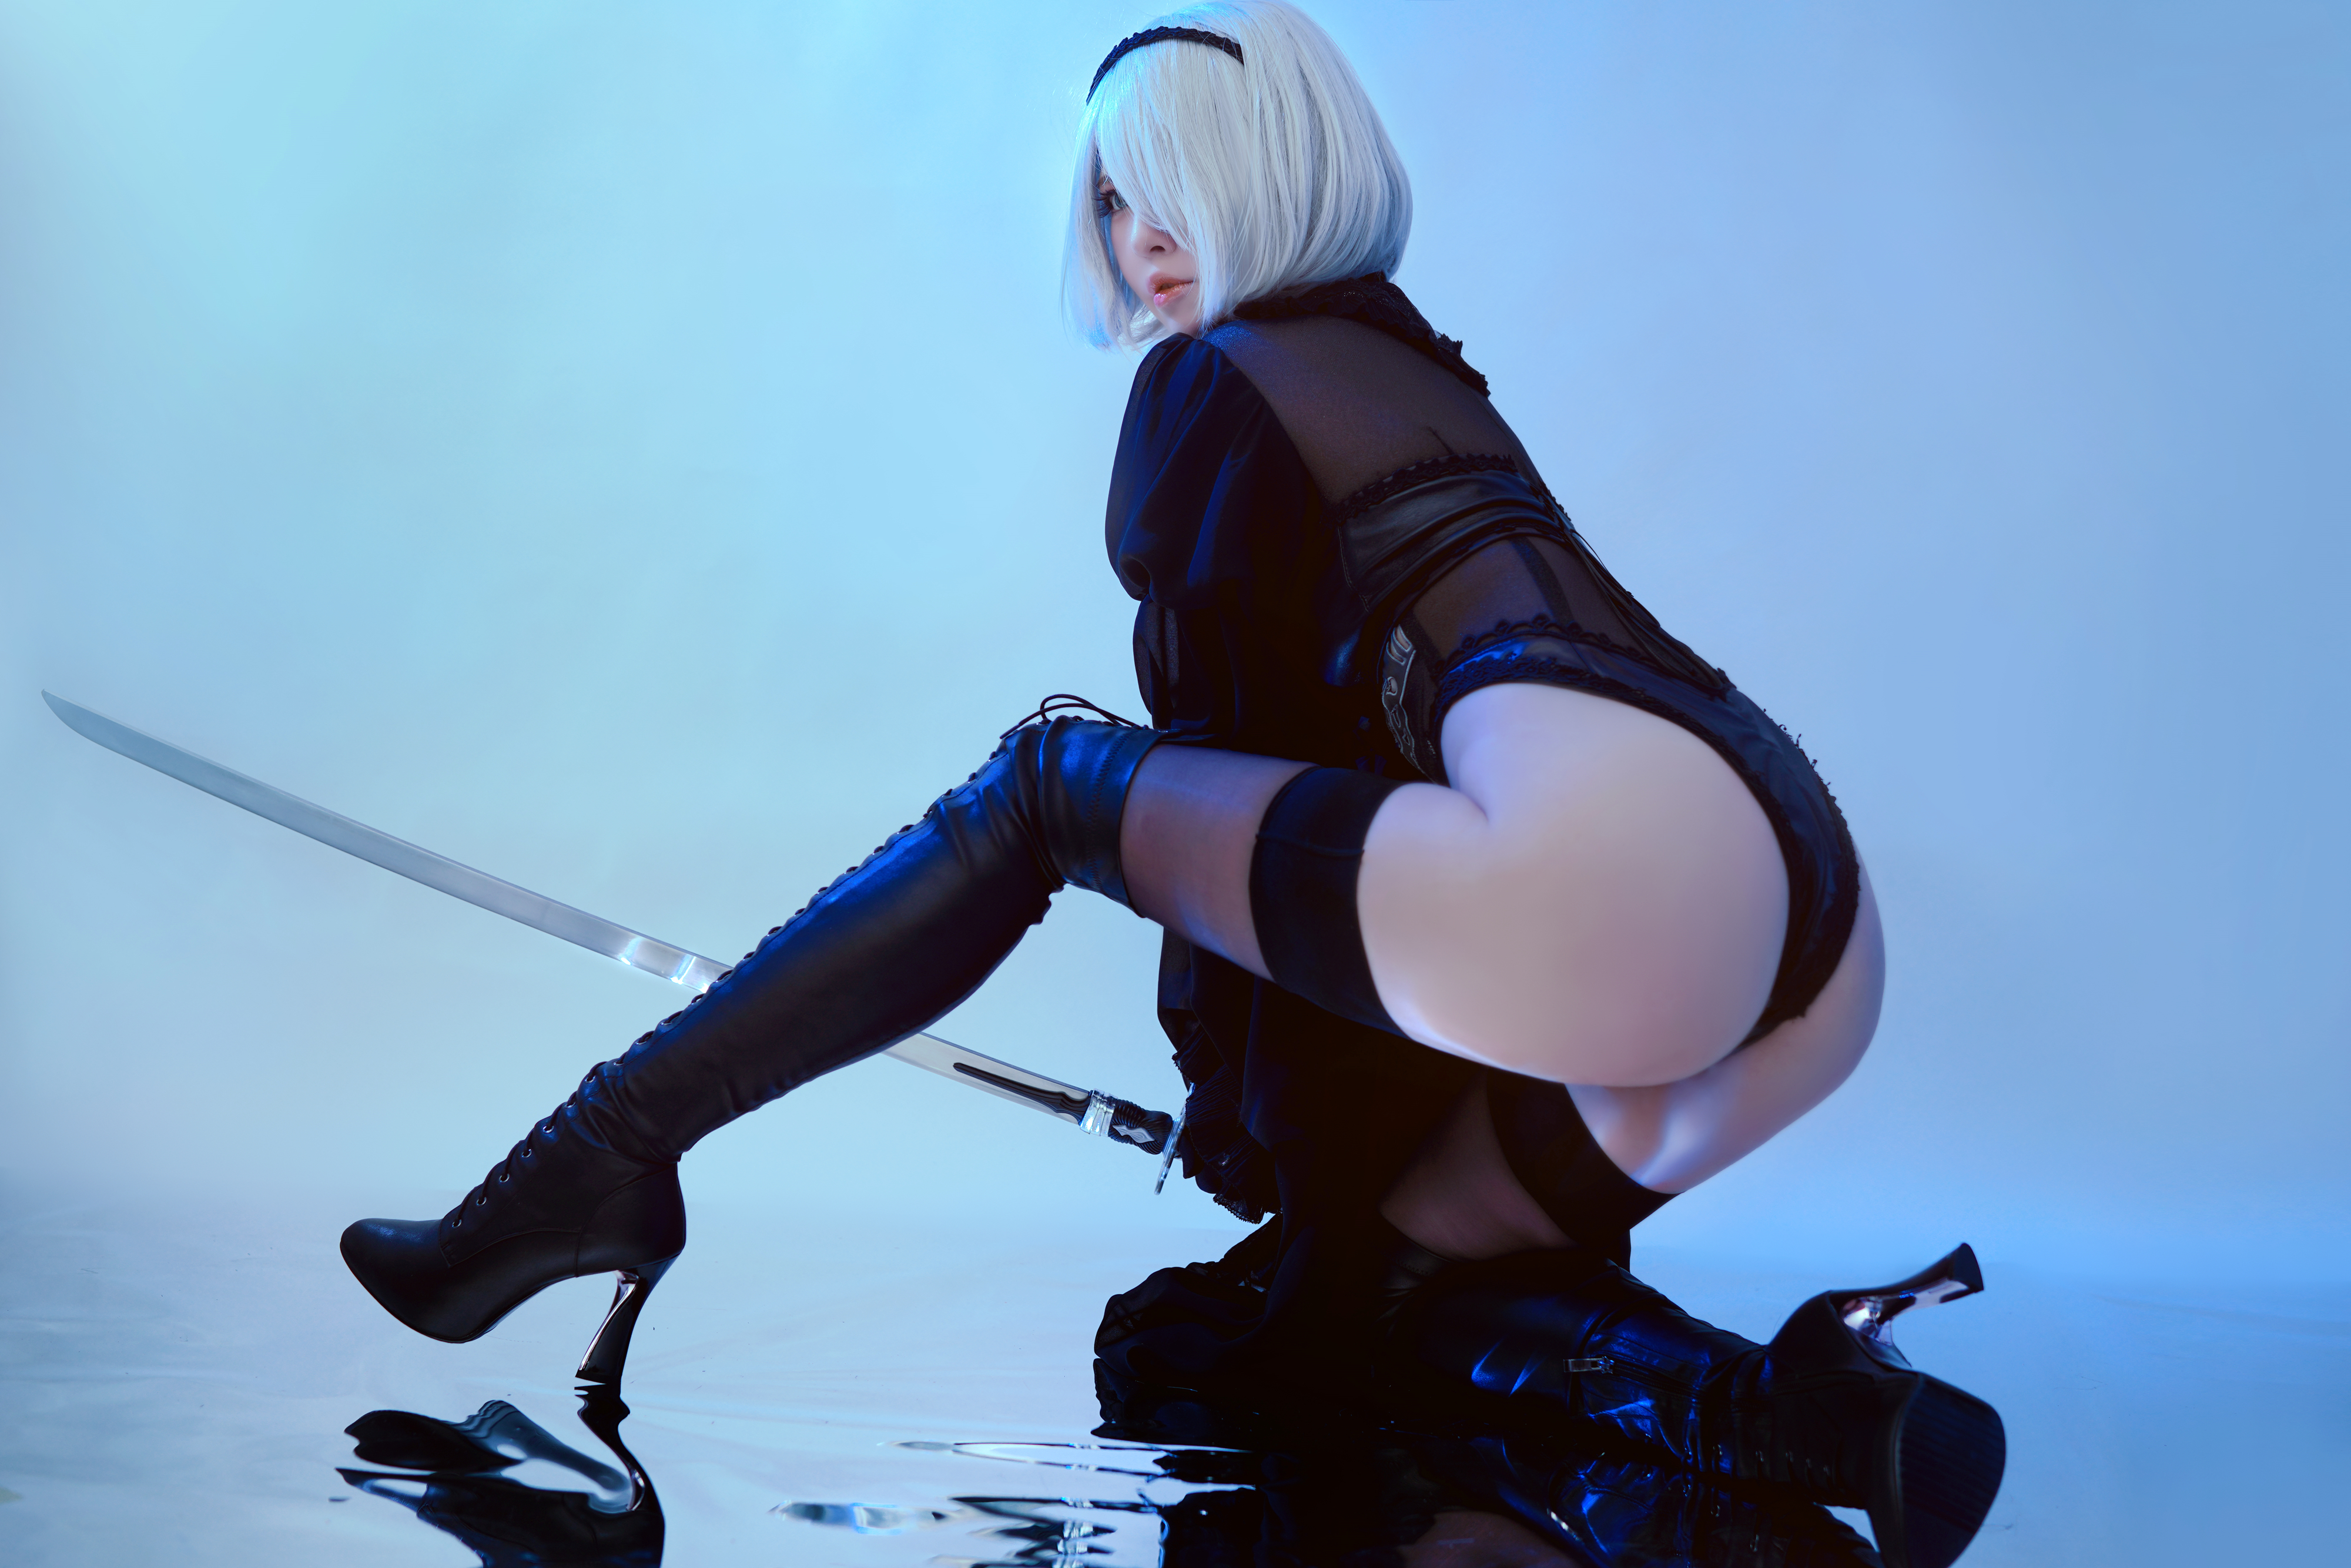 People 4000x2668 women model cosplay Chinese Chinese model BANBANKO 半半子 Nier: Automata 2B (Nier: Automata) stockings women indoors looking at viewer ass katana short hair see-through lingerie pale legs black stockings arched back